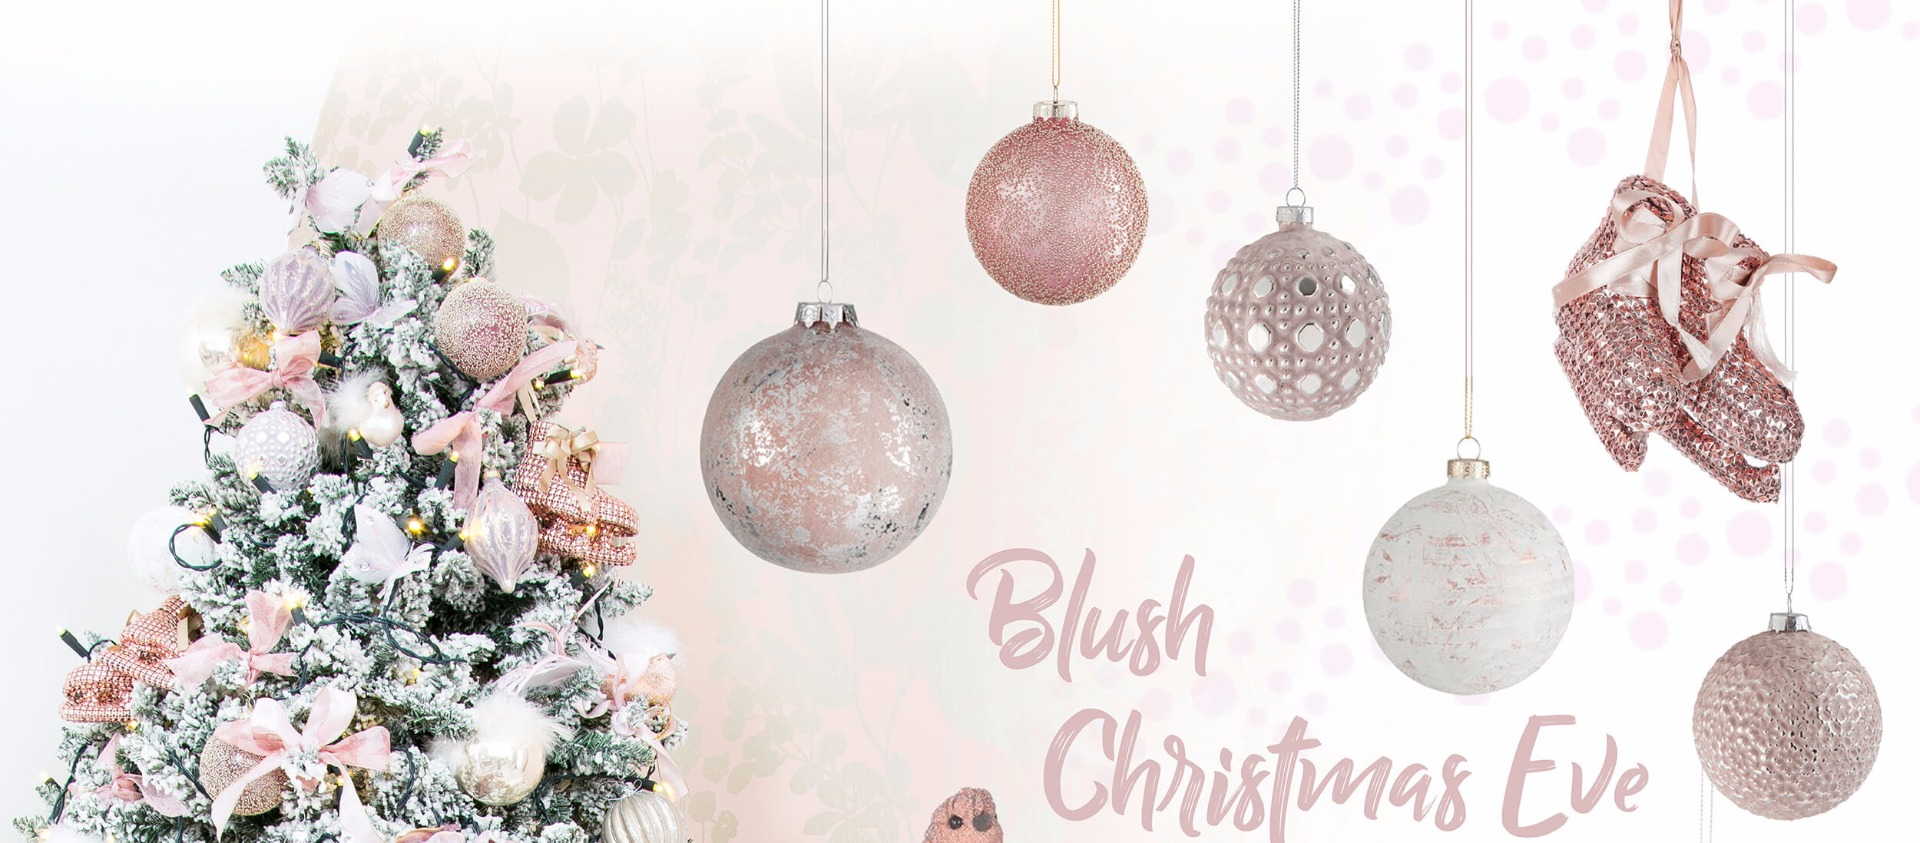 Christbaumkugeln Altrosa Blush Christmas Eve Looks